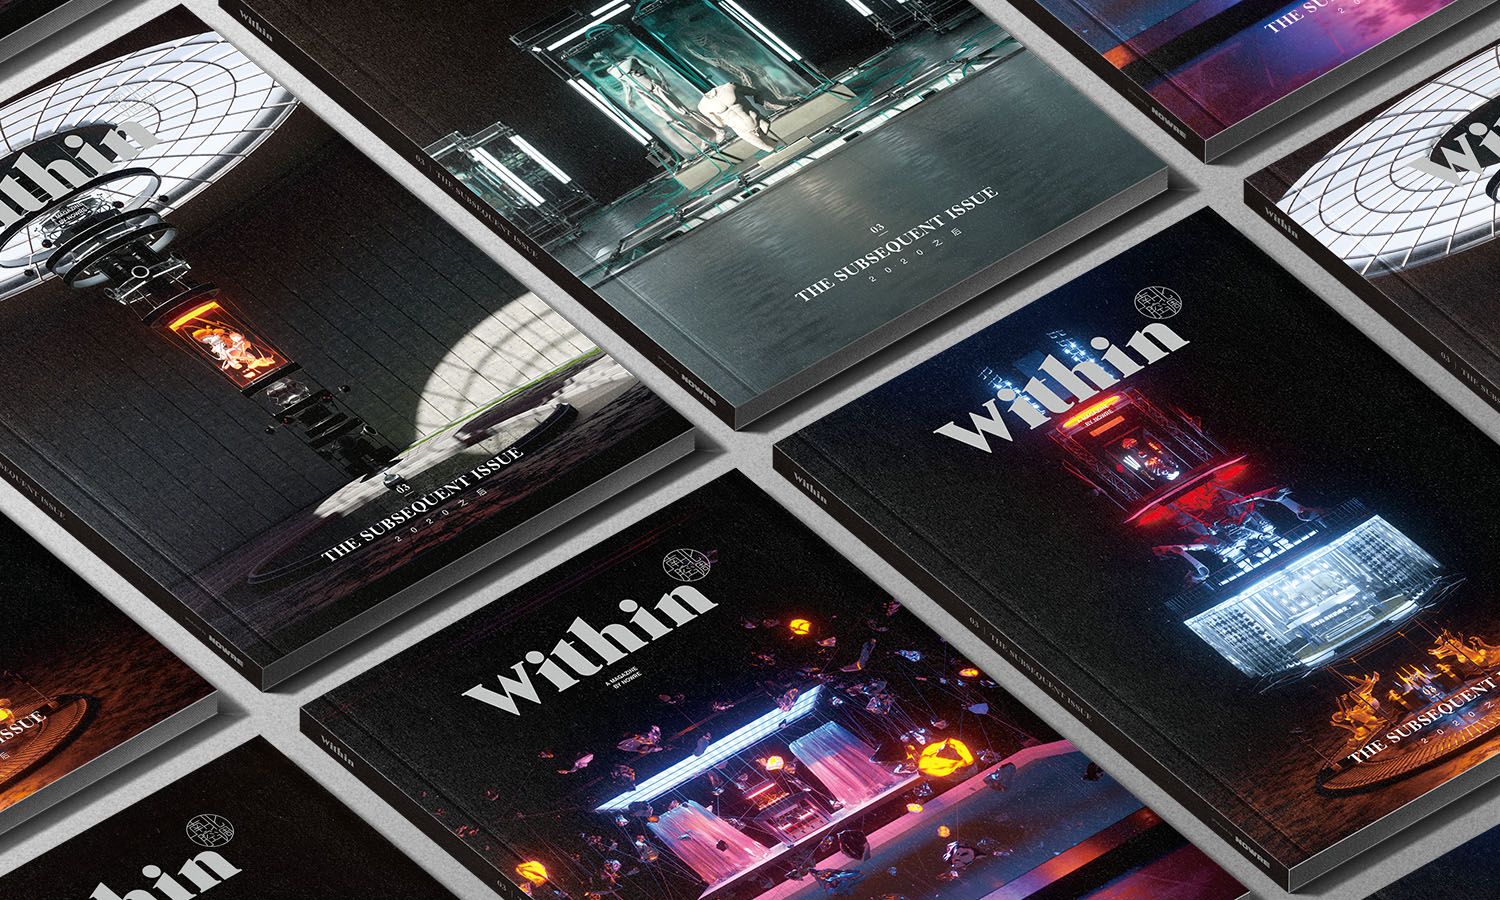 Within Issue 03